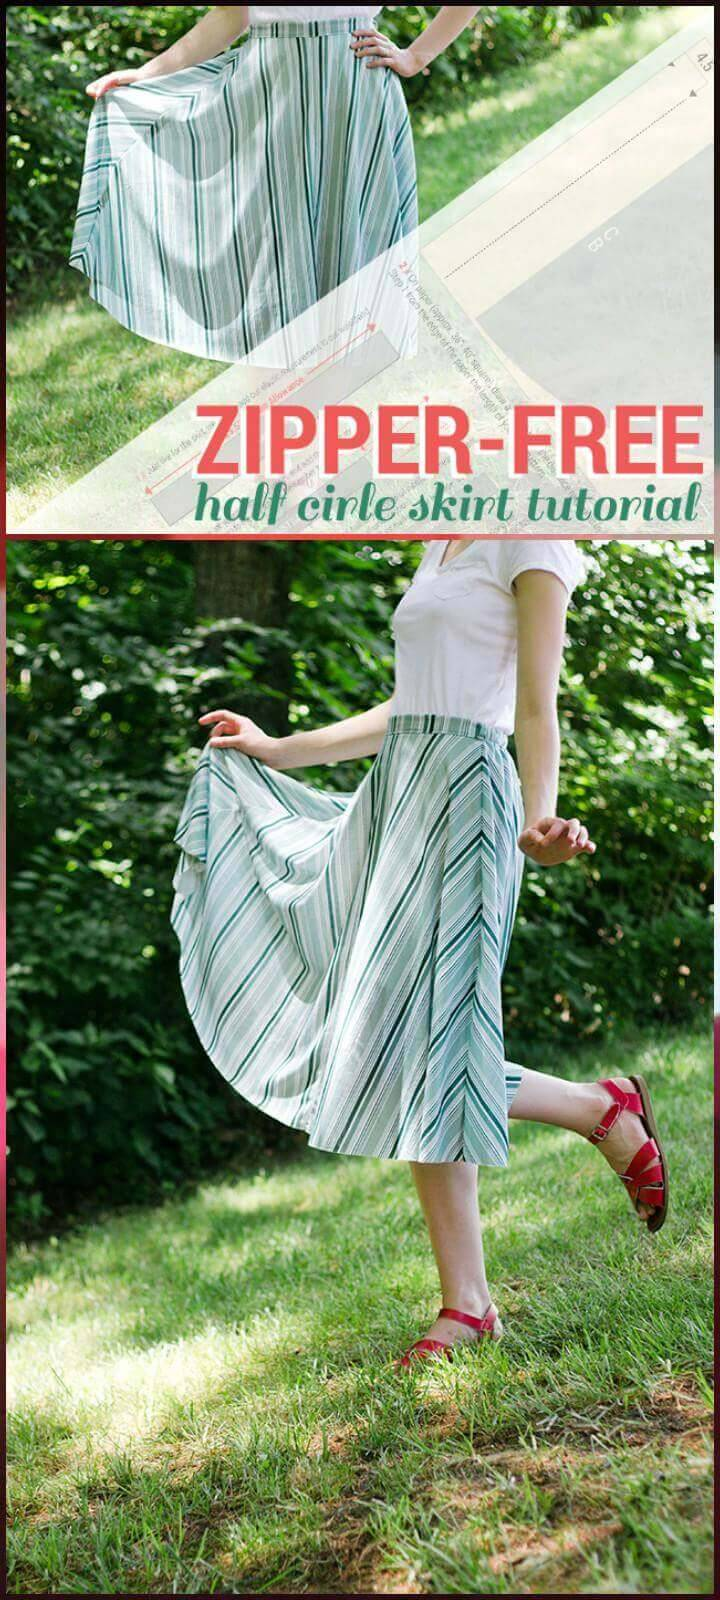 easy zipper-free half circle skirt tutorial